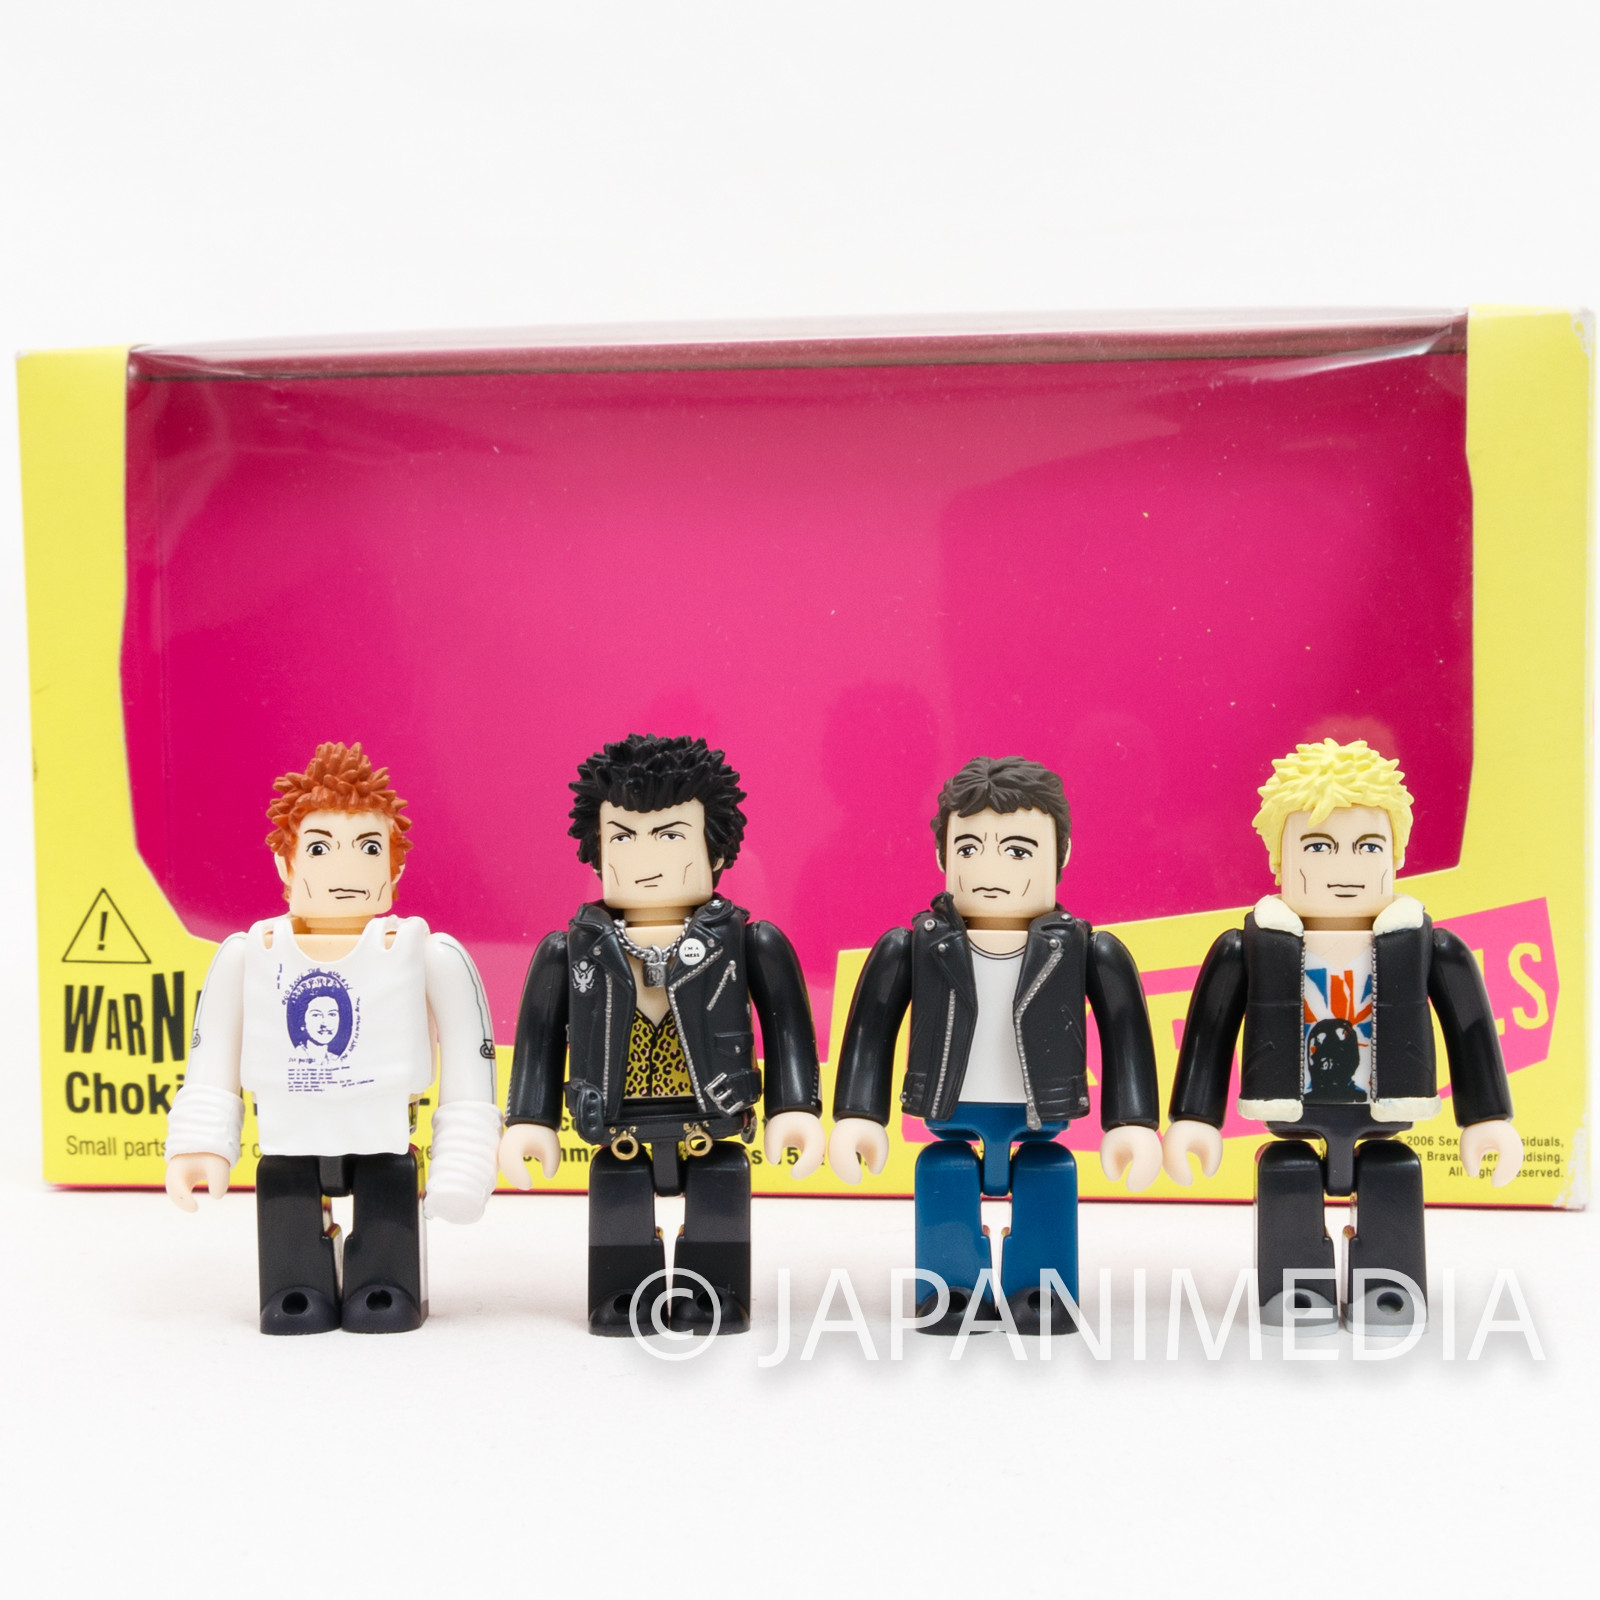 SEX PISTOLS Kubrick figure set Johnny Rotten Sid Vicious Medicom Toy JAPAN 1